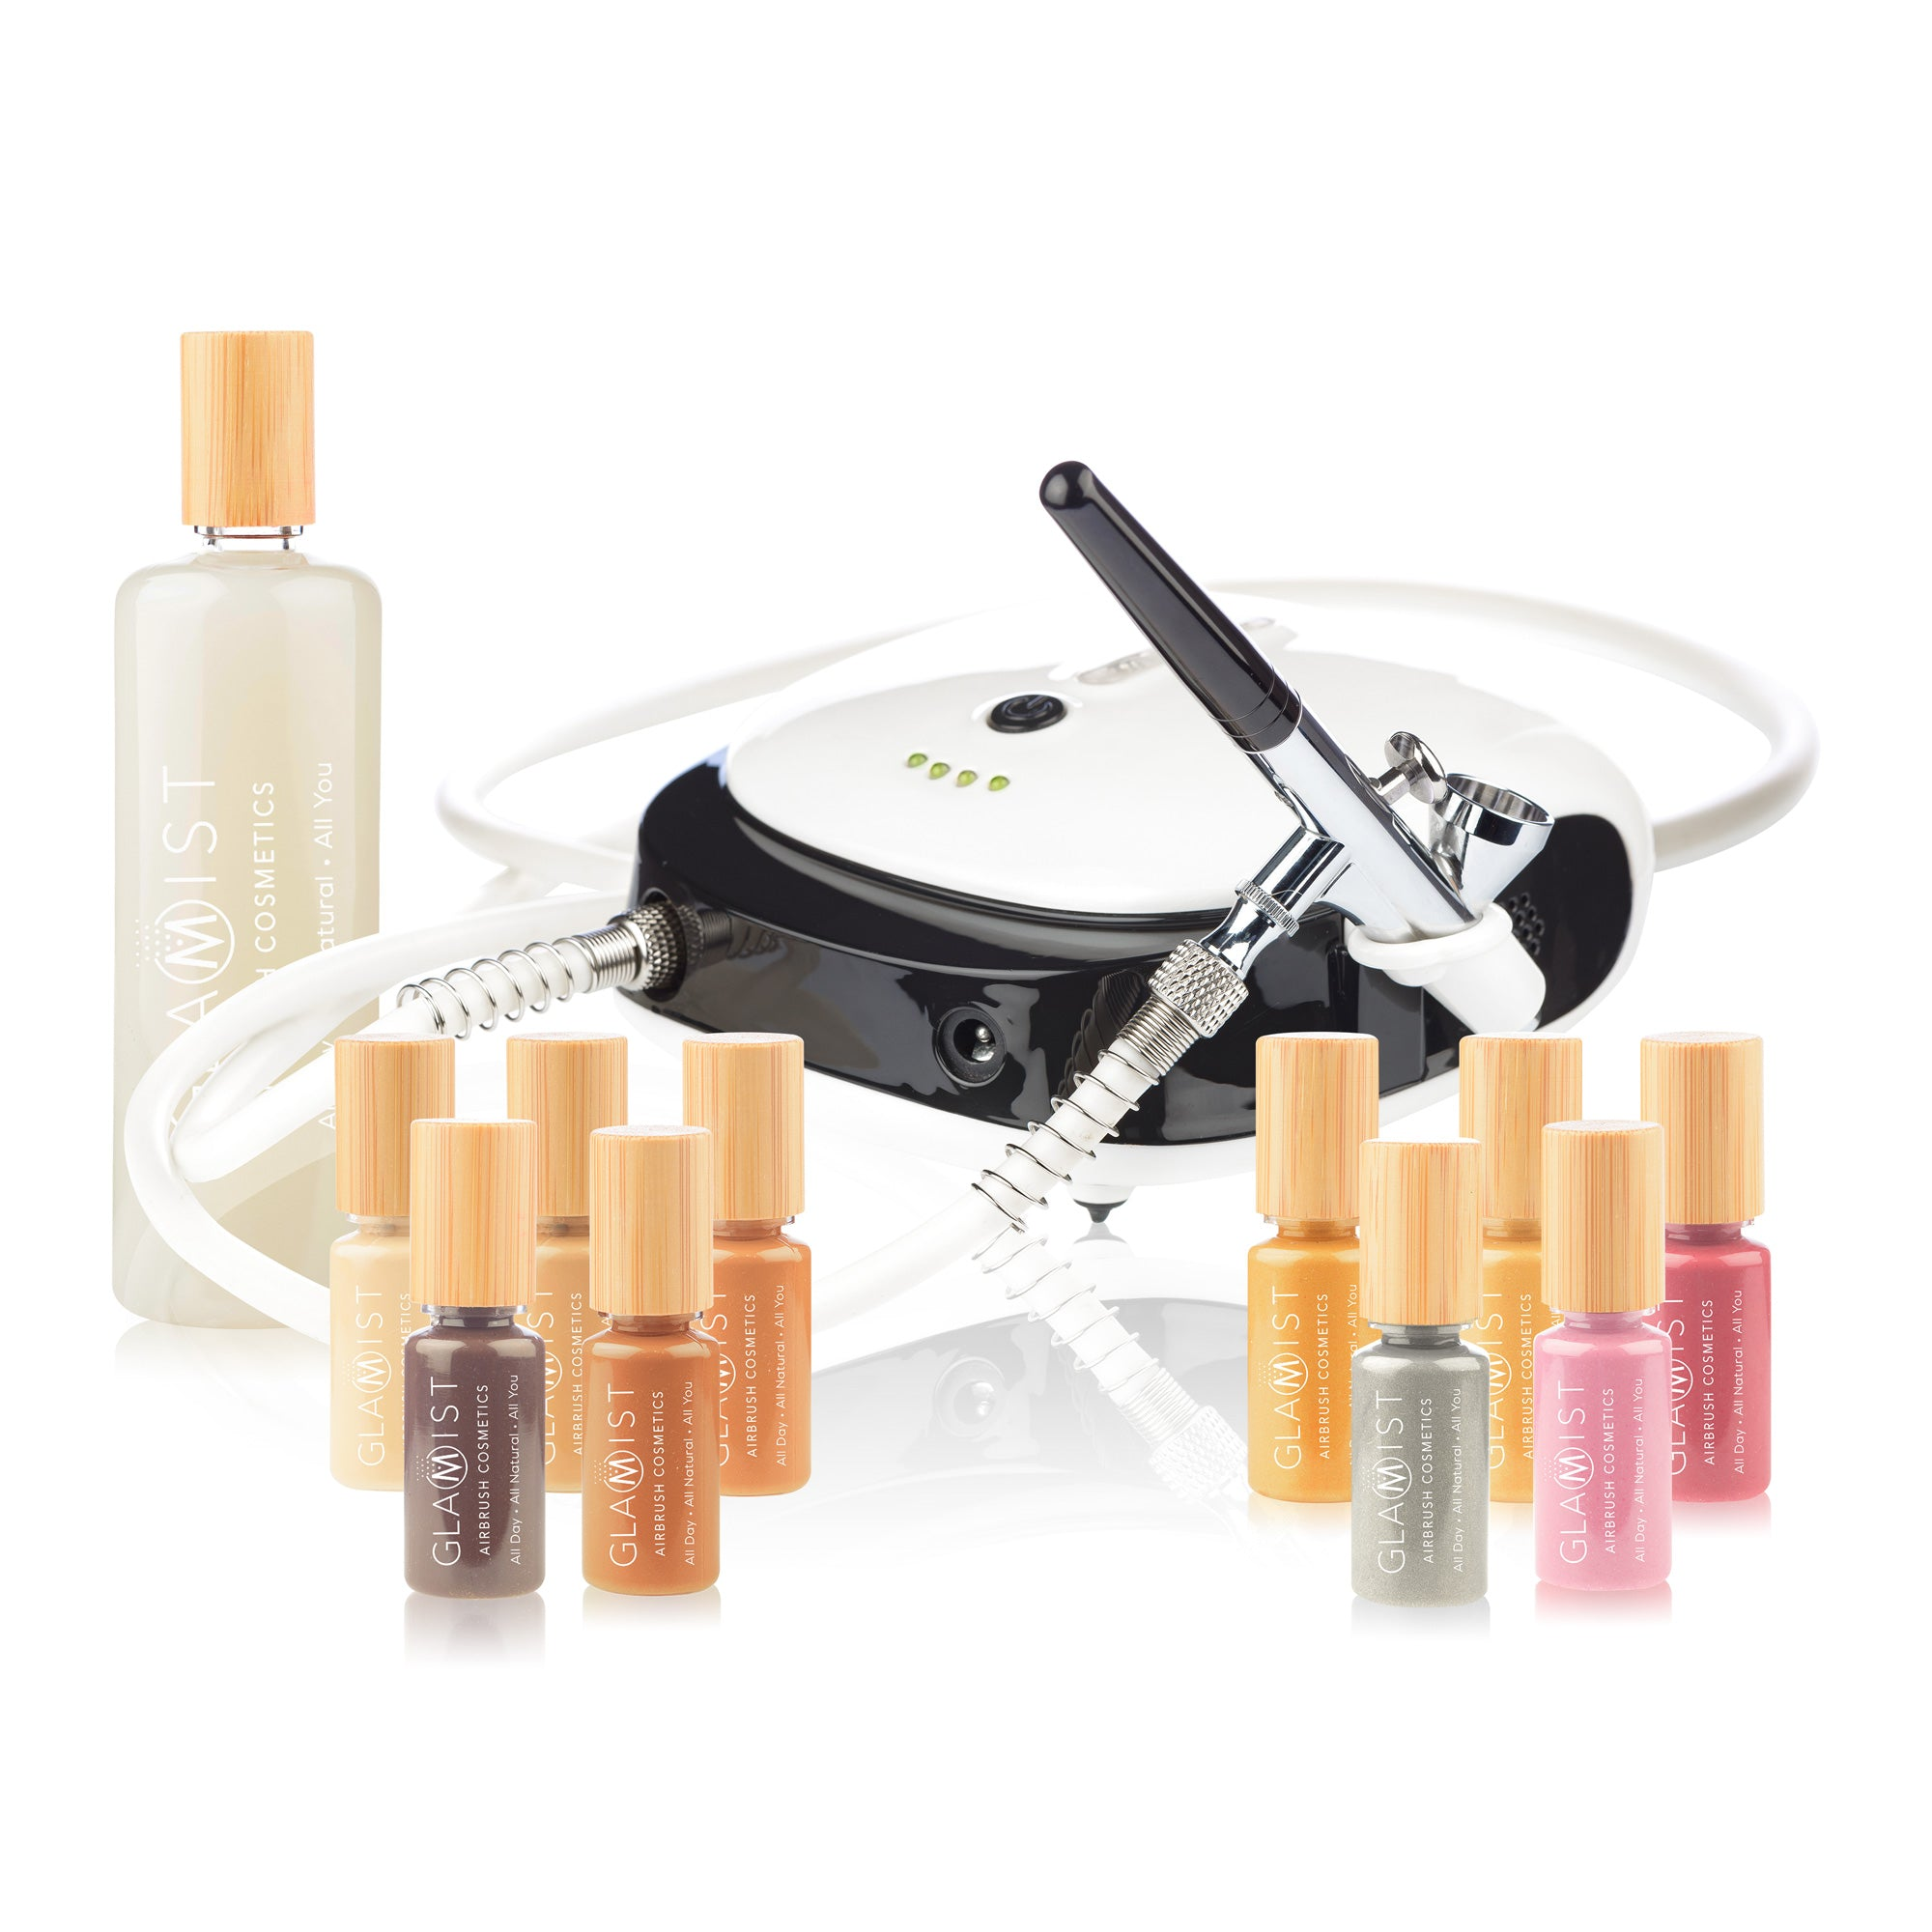 Glamist Airbrush Pro Kit 10ml